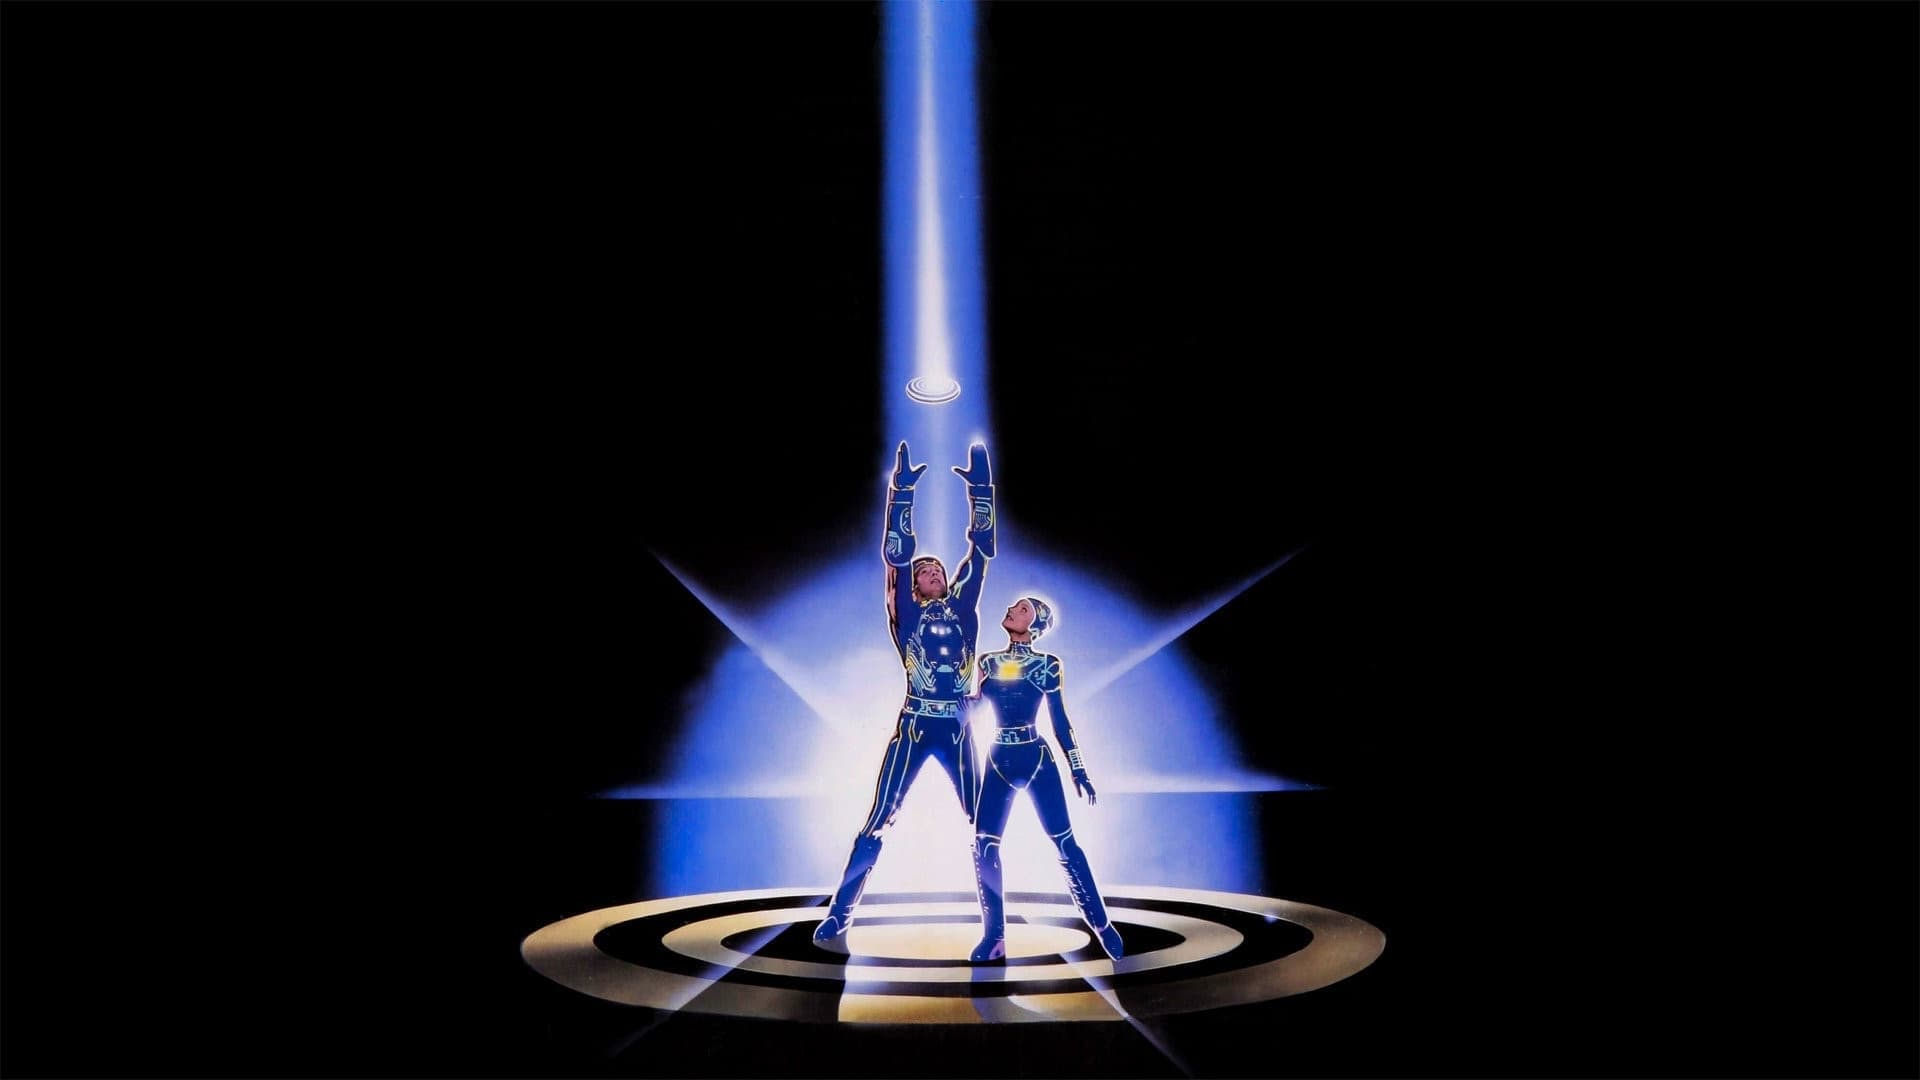 Greetings Programs | 'Tron' Turns 38